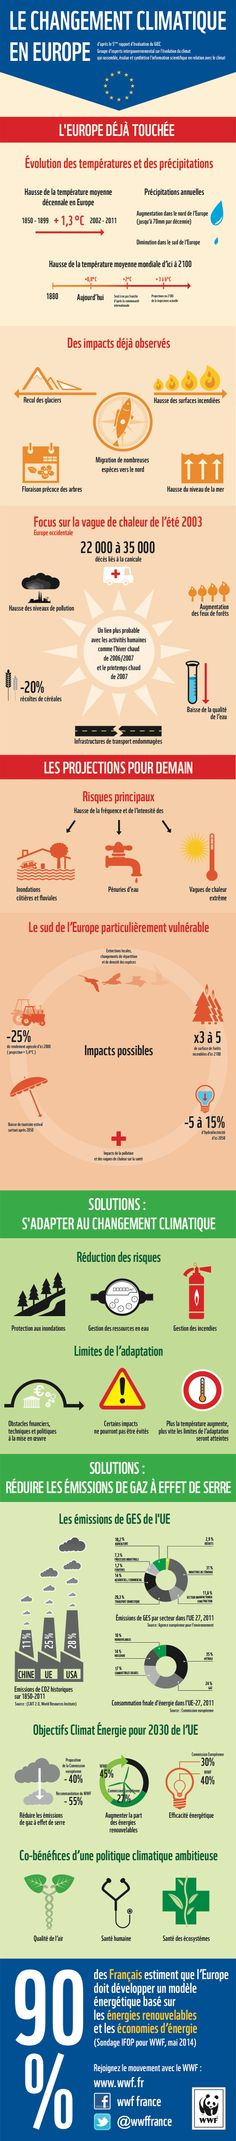 Infographie du WWF « Les changements climatiques en Europe » Knowledge, Europe, Nature, World Discovery, Climate Change, Infographic, Environment, Board, Naturaleza